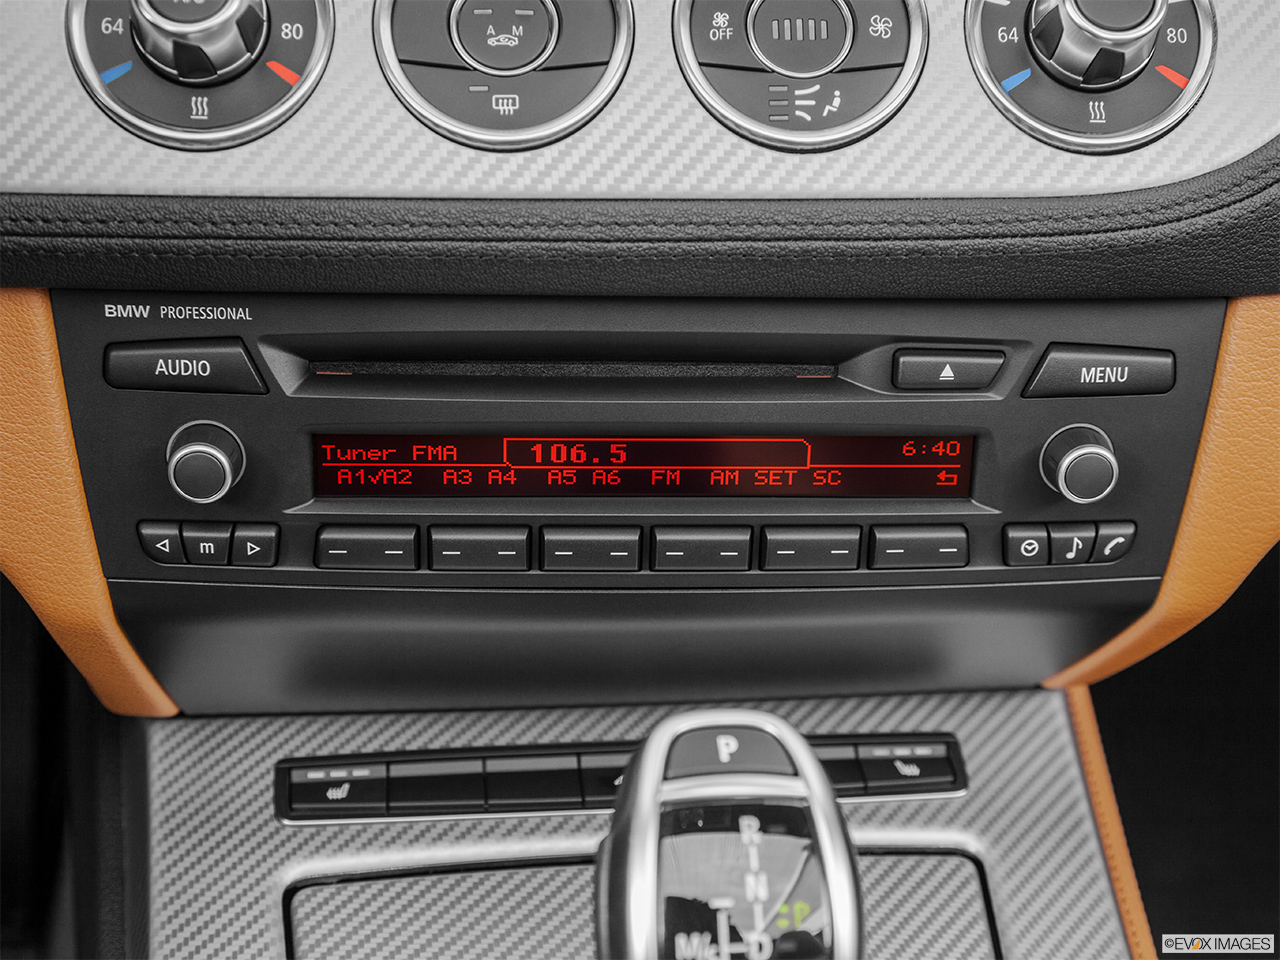 2015 Bmw Z4 Roadster 28i Closeup Of Radio Head Unit